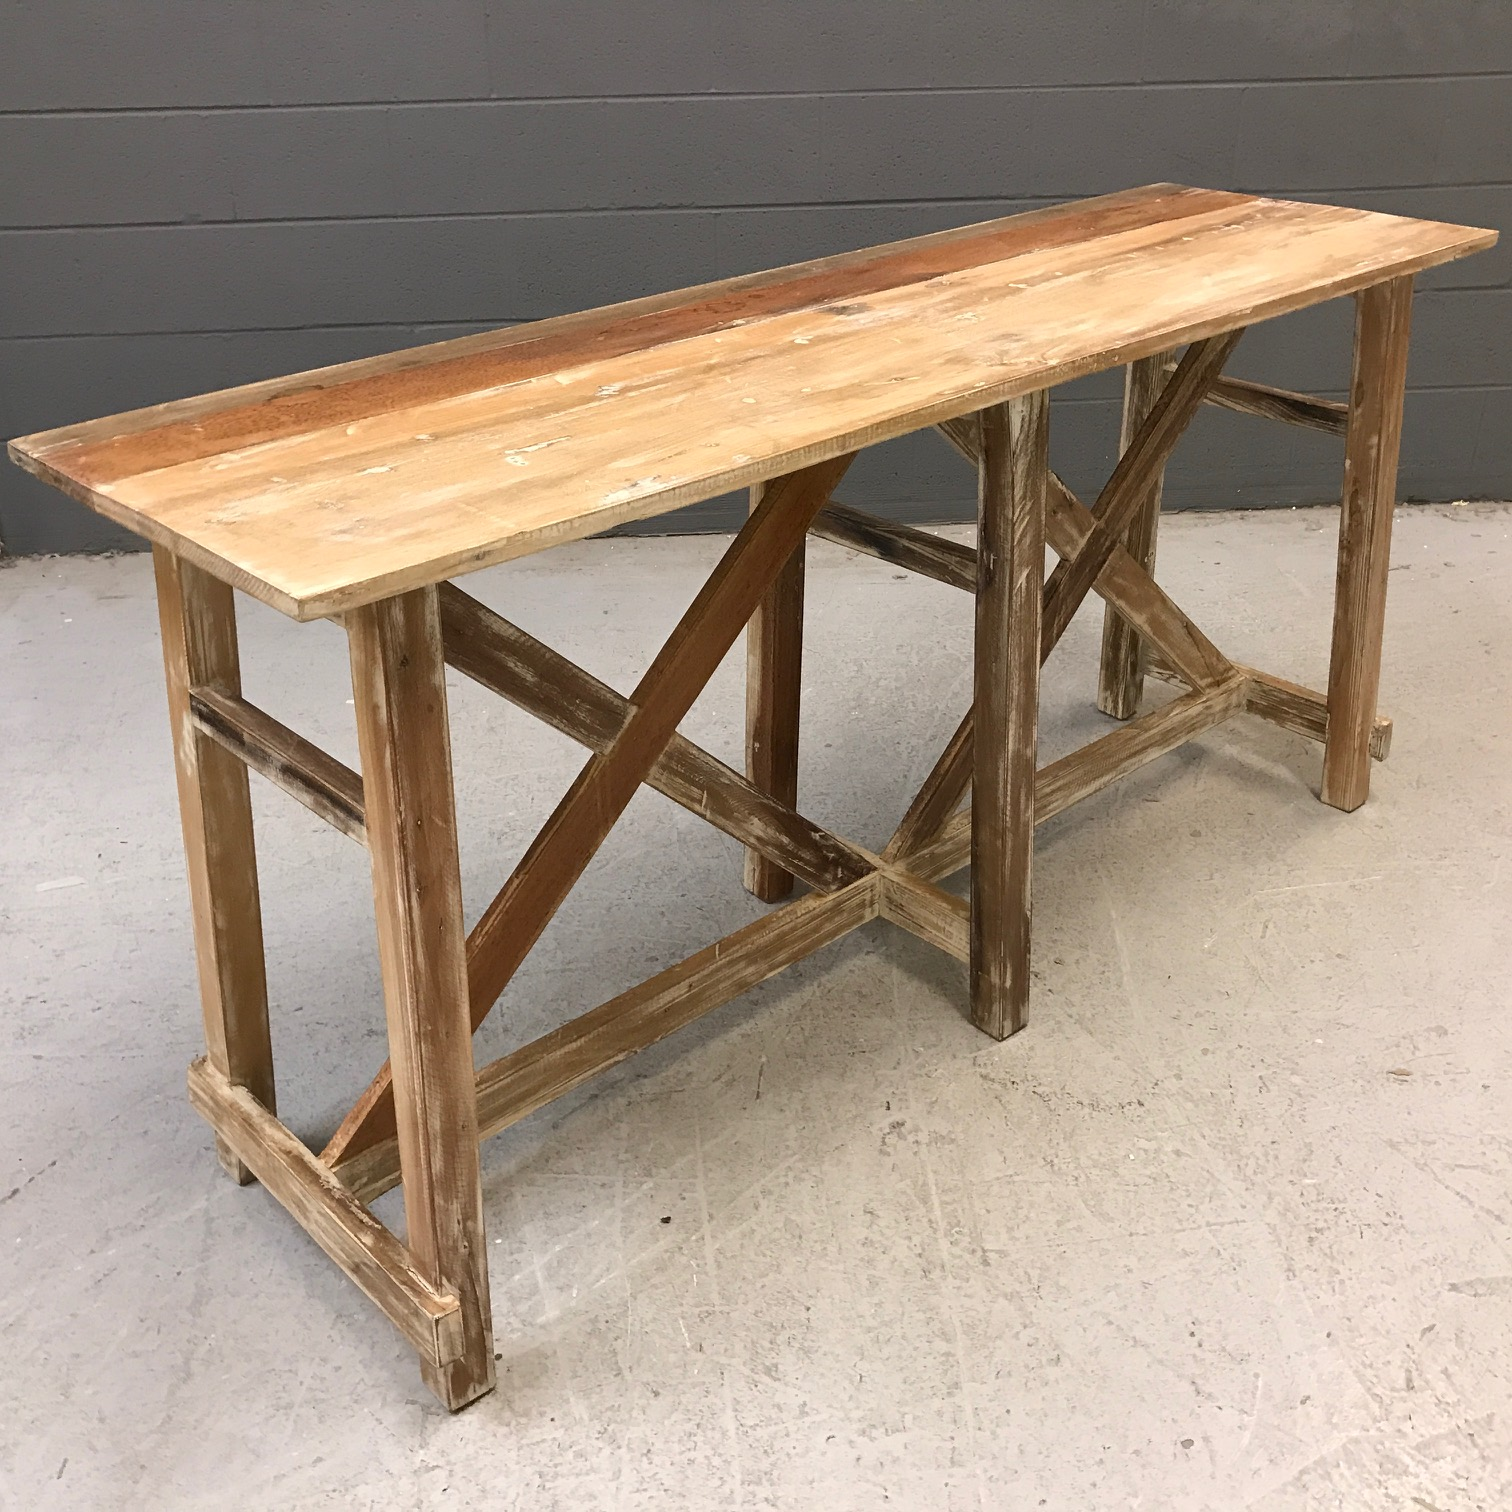 Ordinaire Reclaimed Wood Console Table